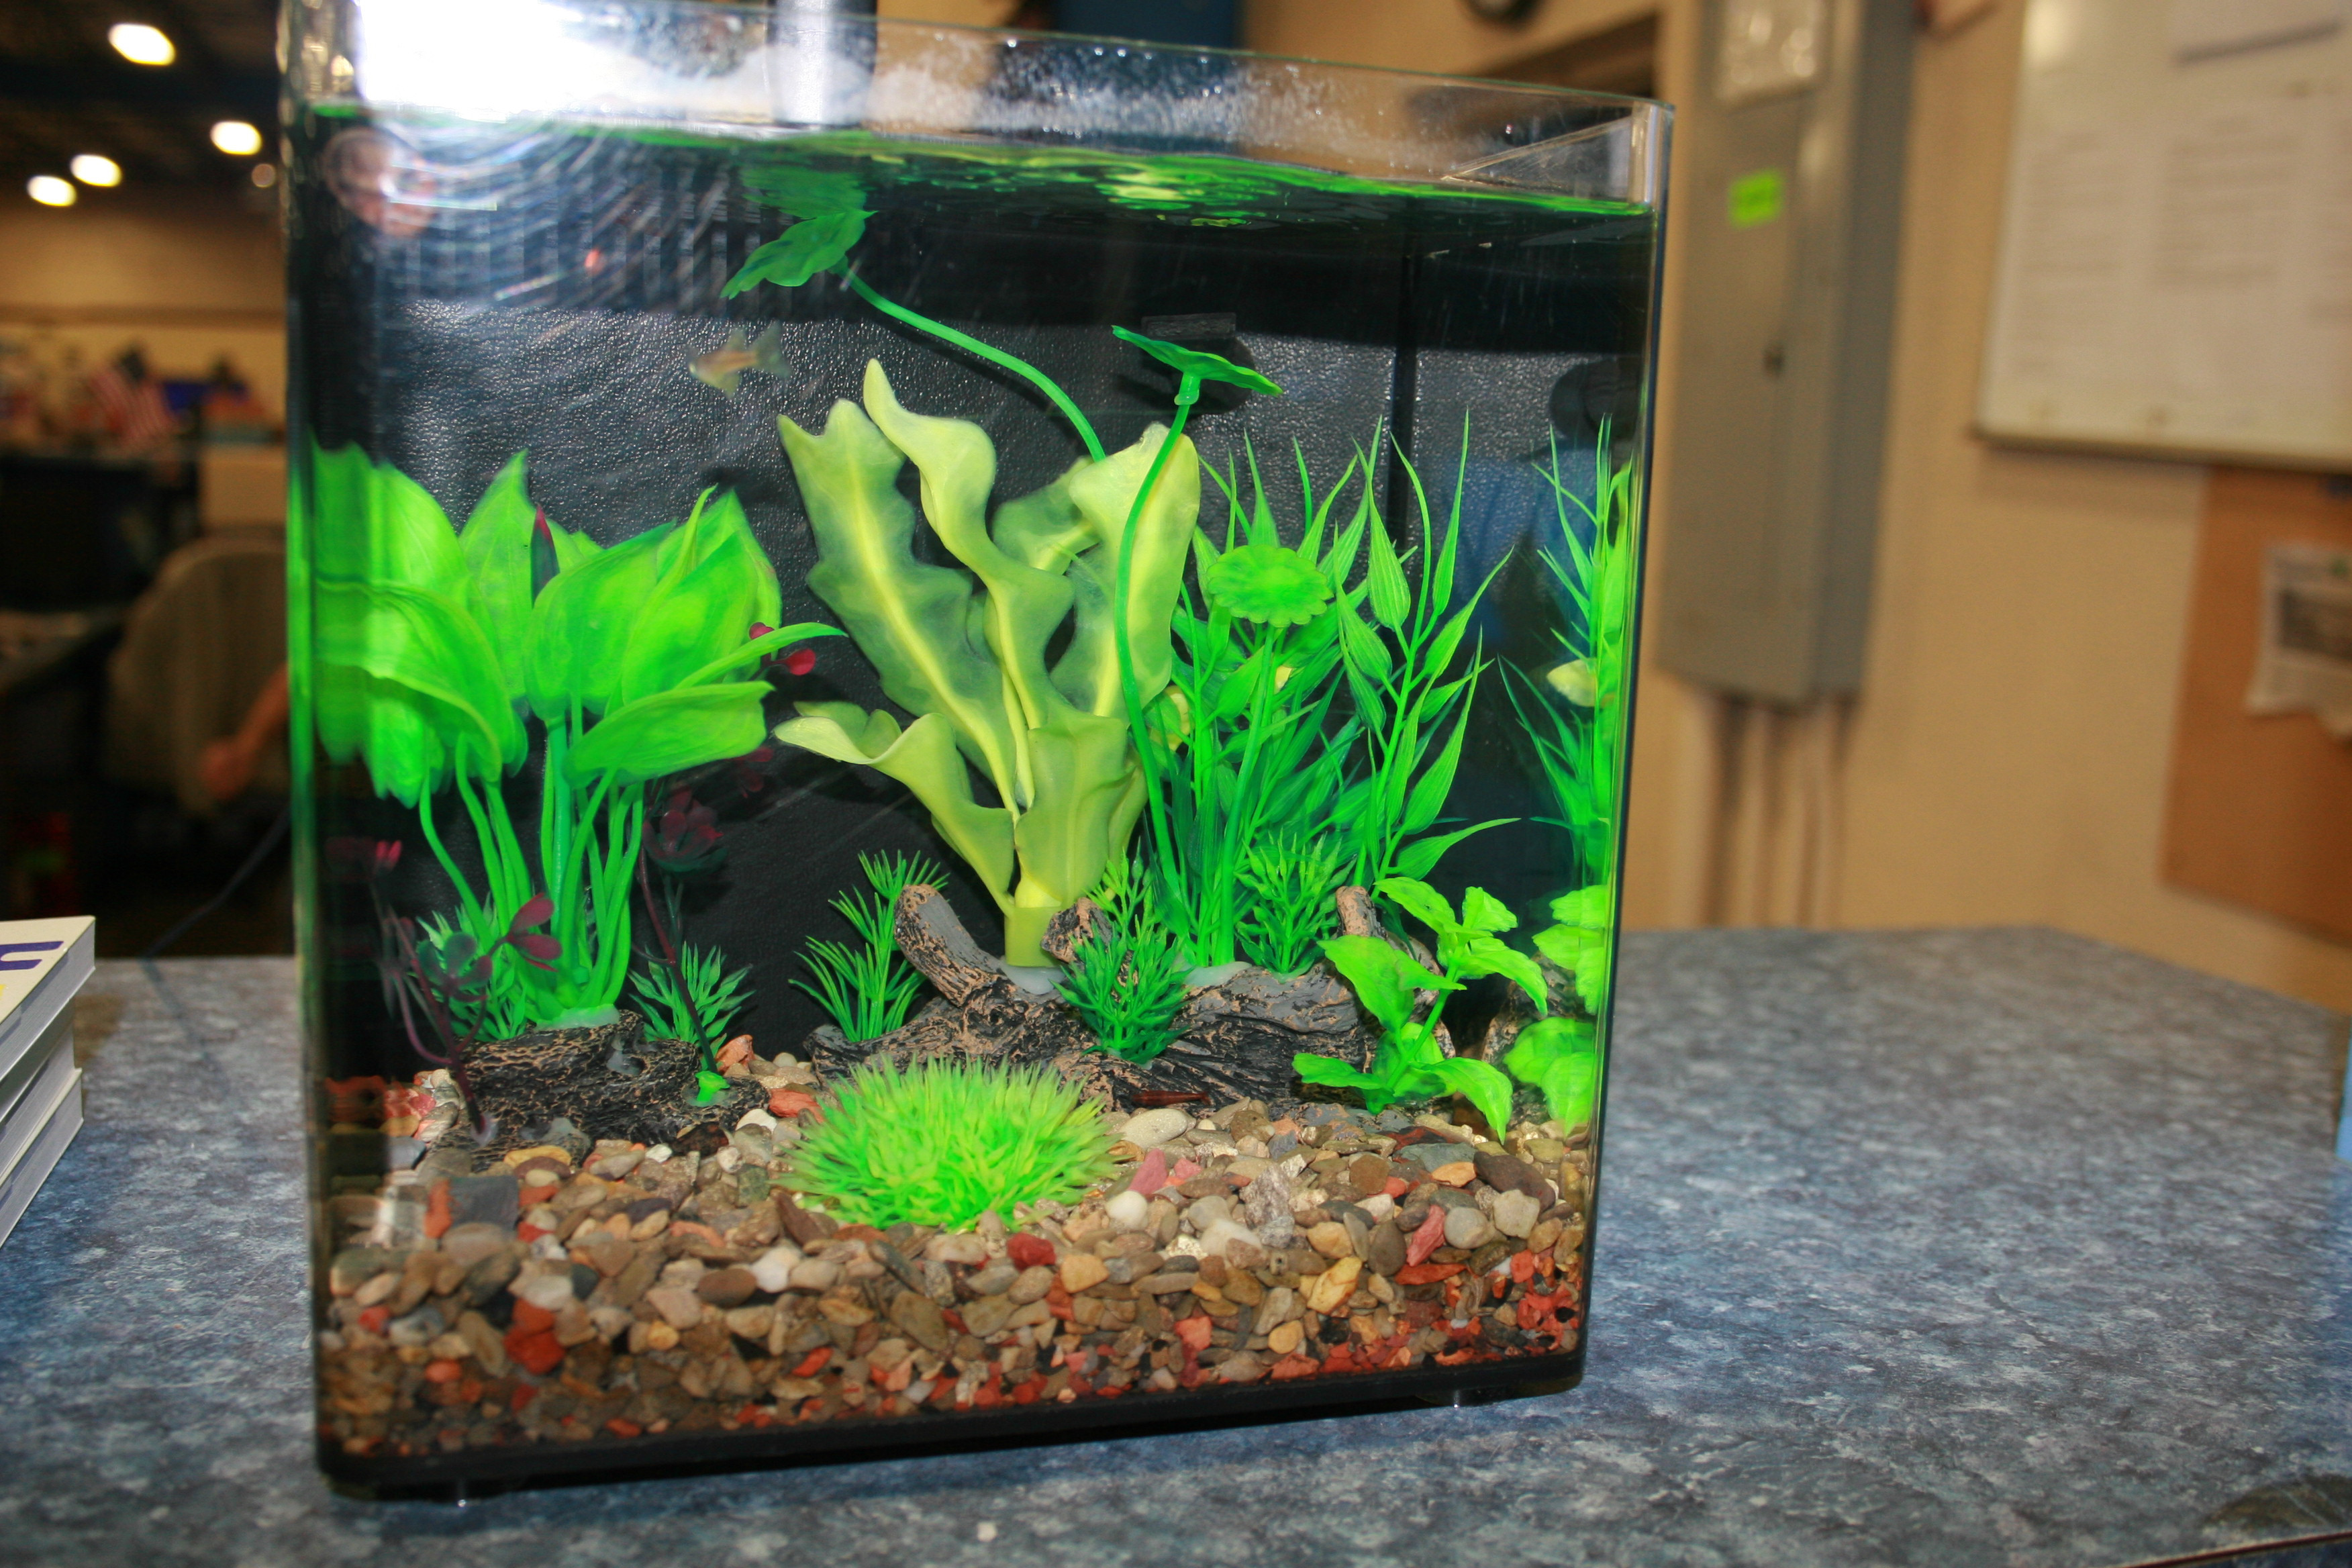 betta fish plant vase of aquarium gravel and substrate vs bare bottom tanks pros and cons regarding img 4312